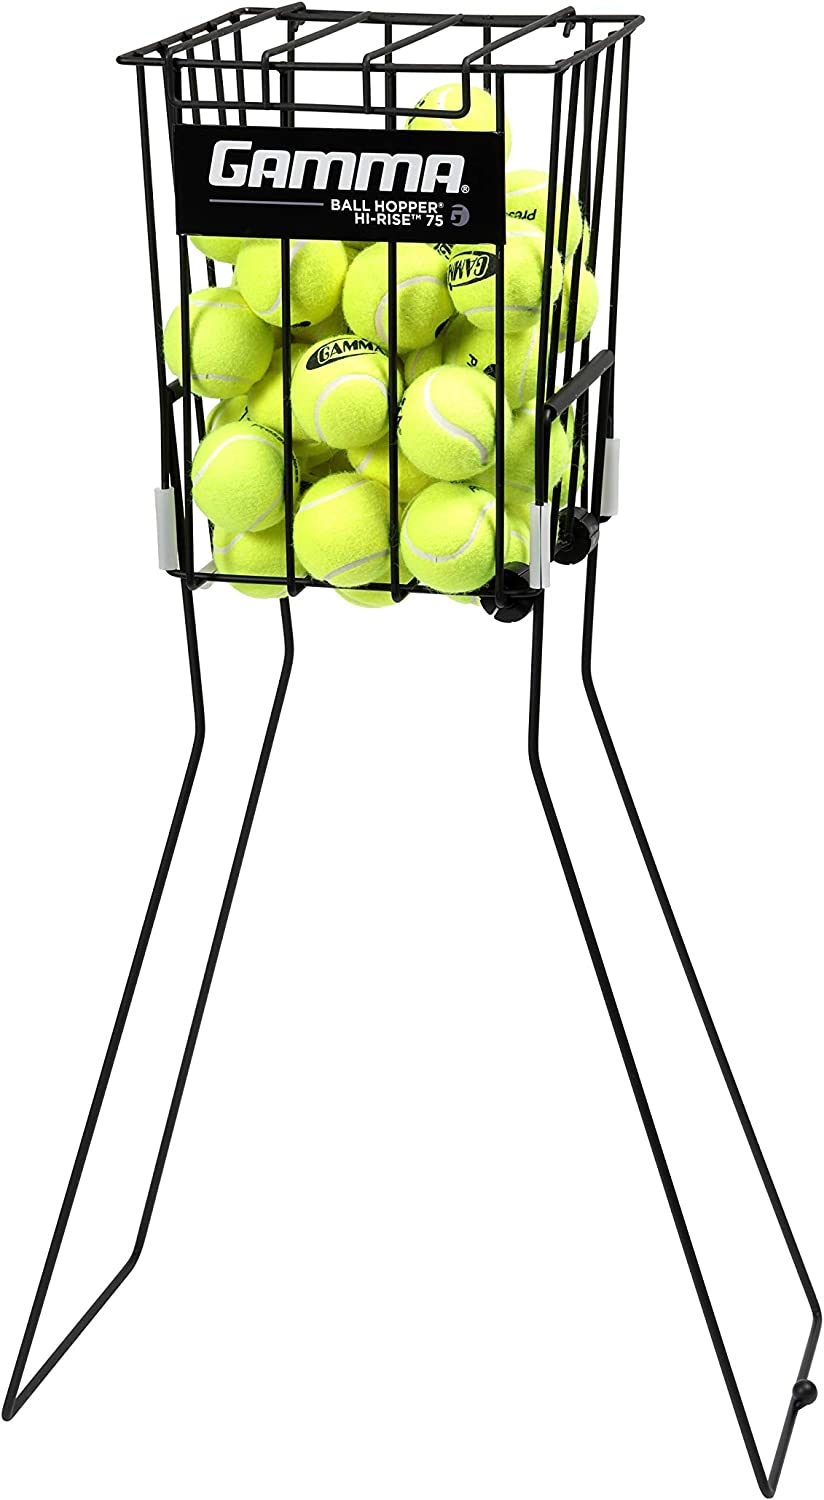 Amazon.com: GAMMA Hopper - Pelota de tenis, Negro: Sports ...